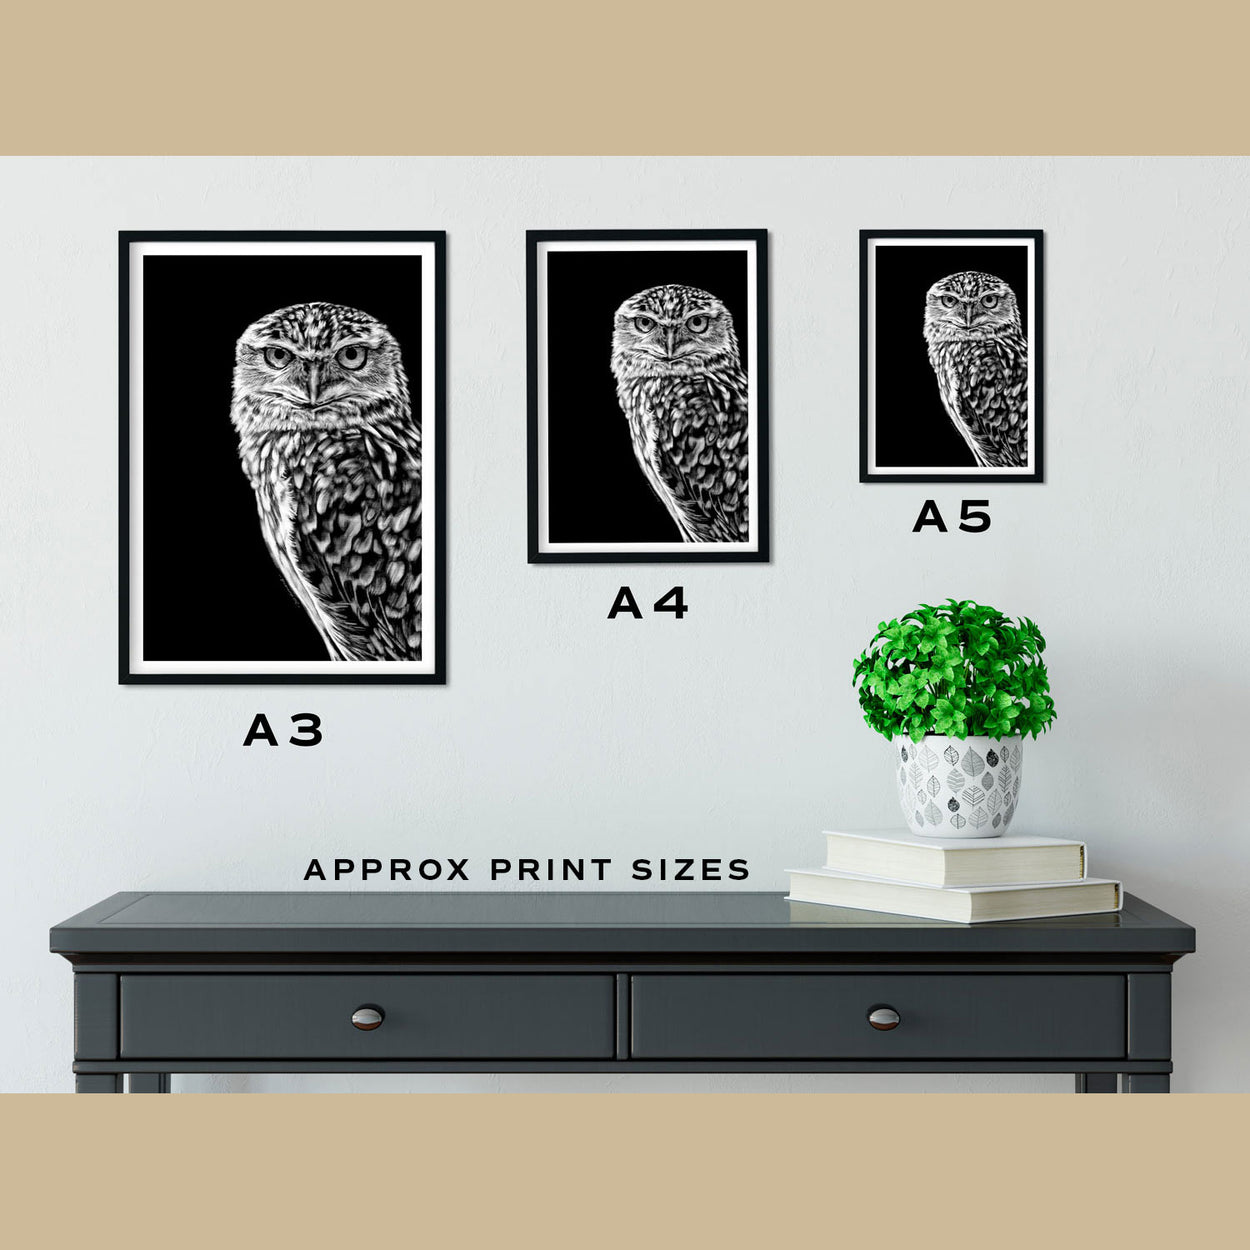 Burrowing Owl Prints Size Comparison - The Thriving Wild